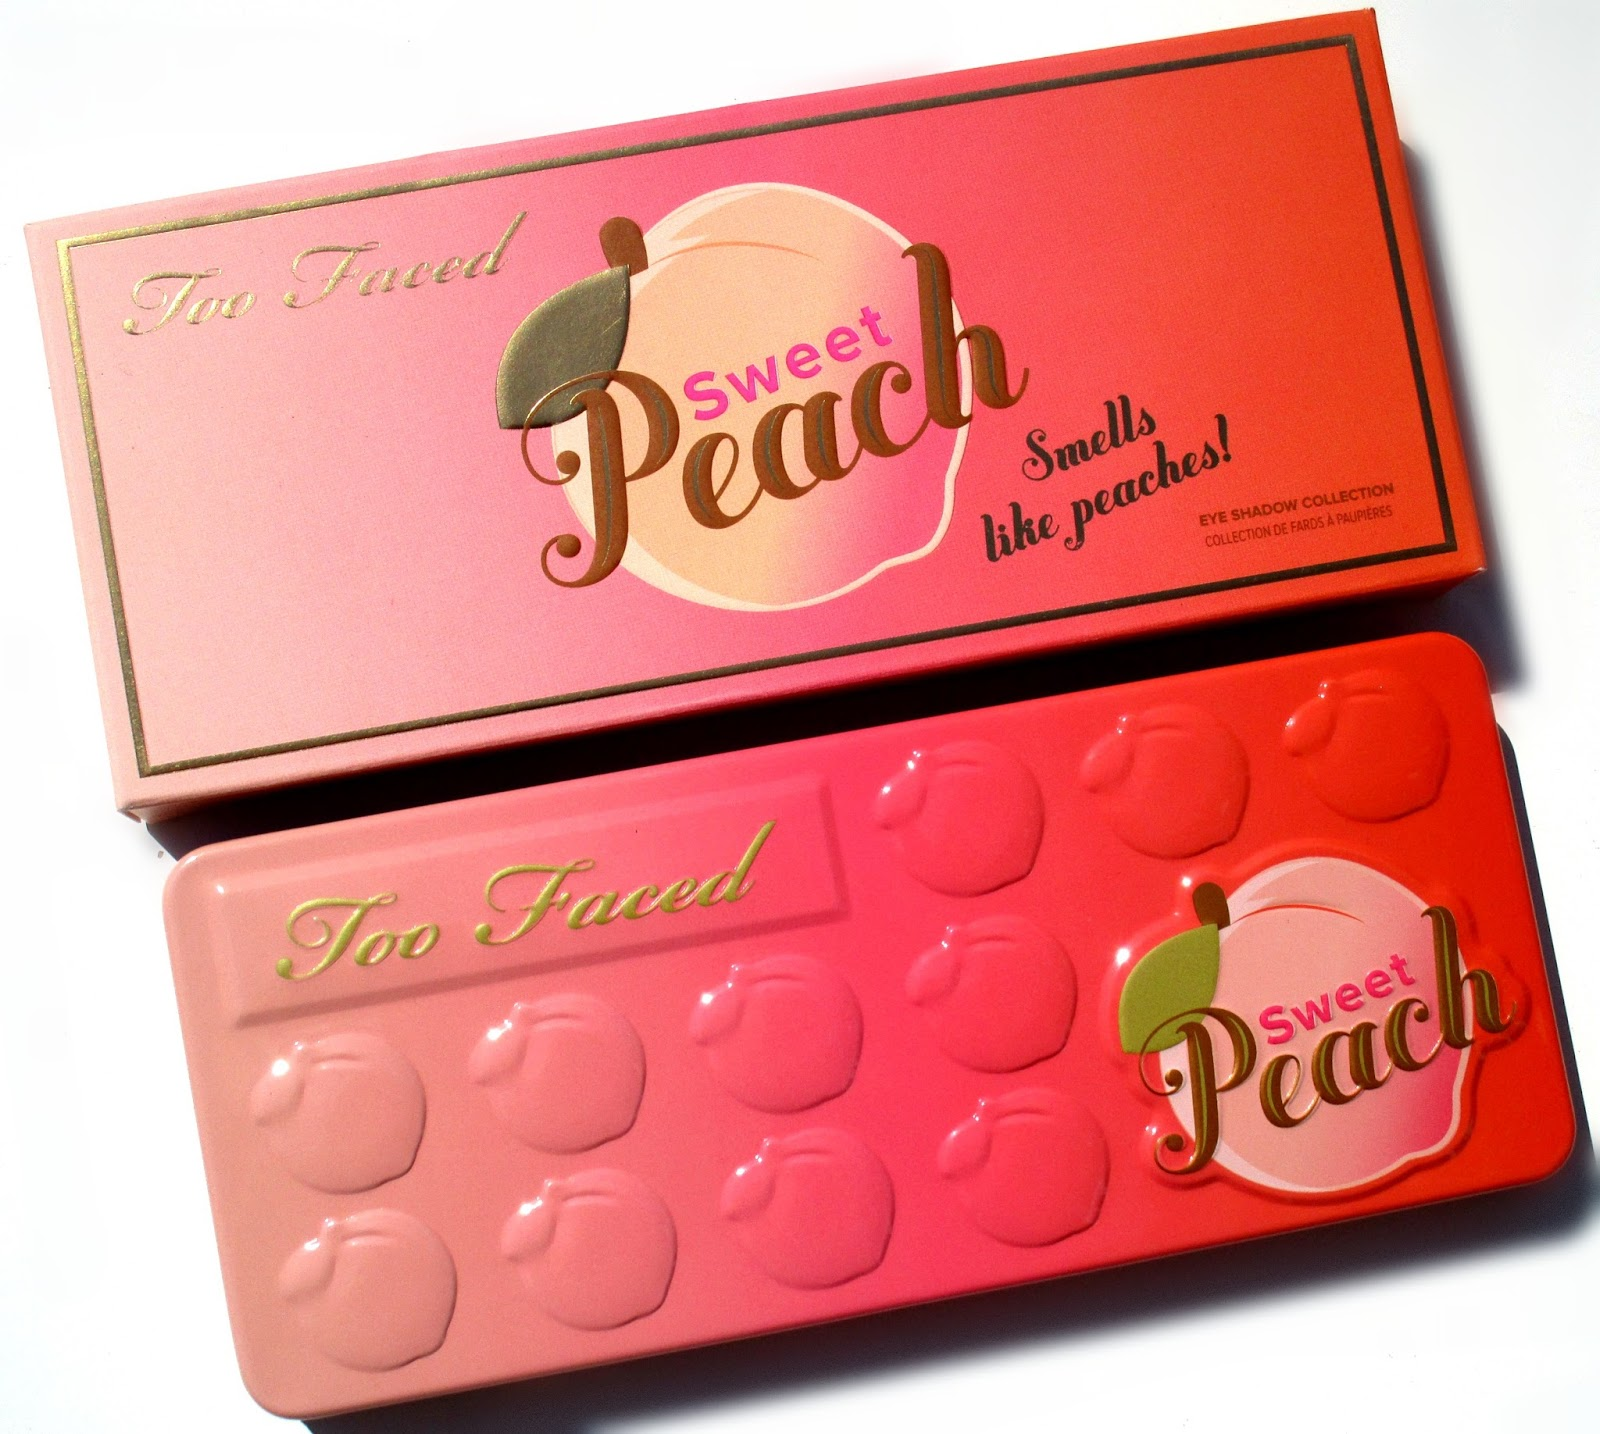 haysparkle too faced sweet peach eyeshadow palette review. Black Bedroom Furniture Sets. Home Design Ideas